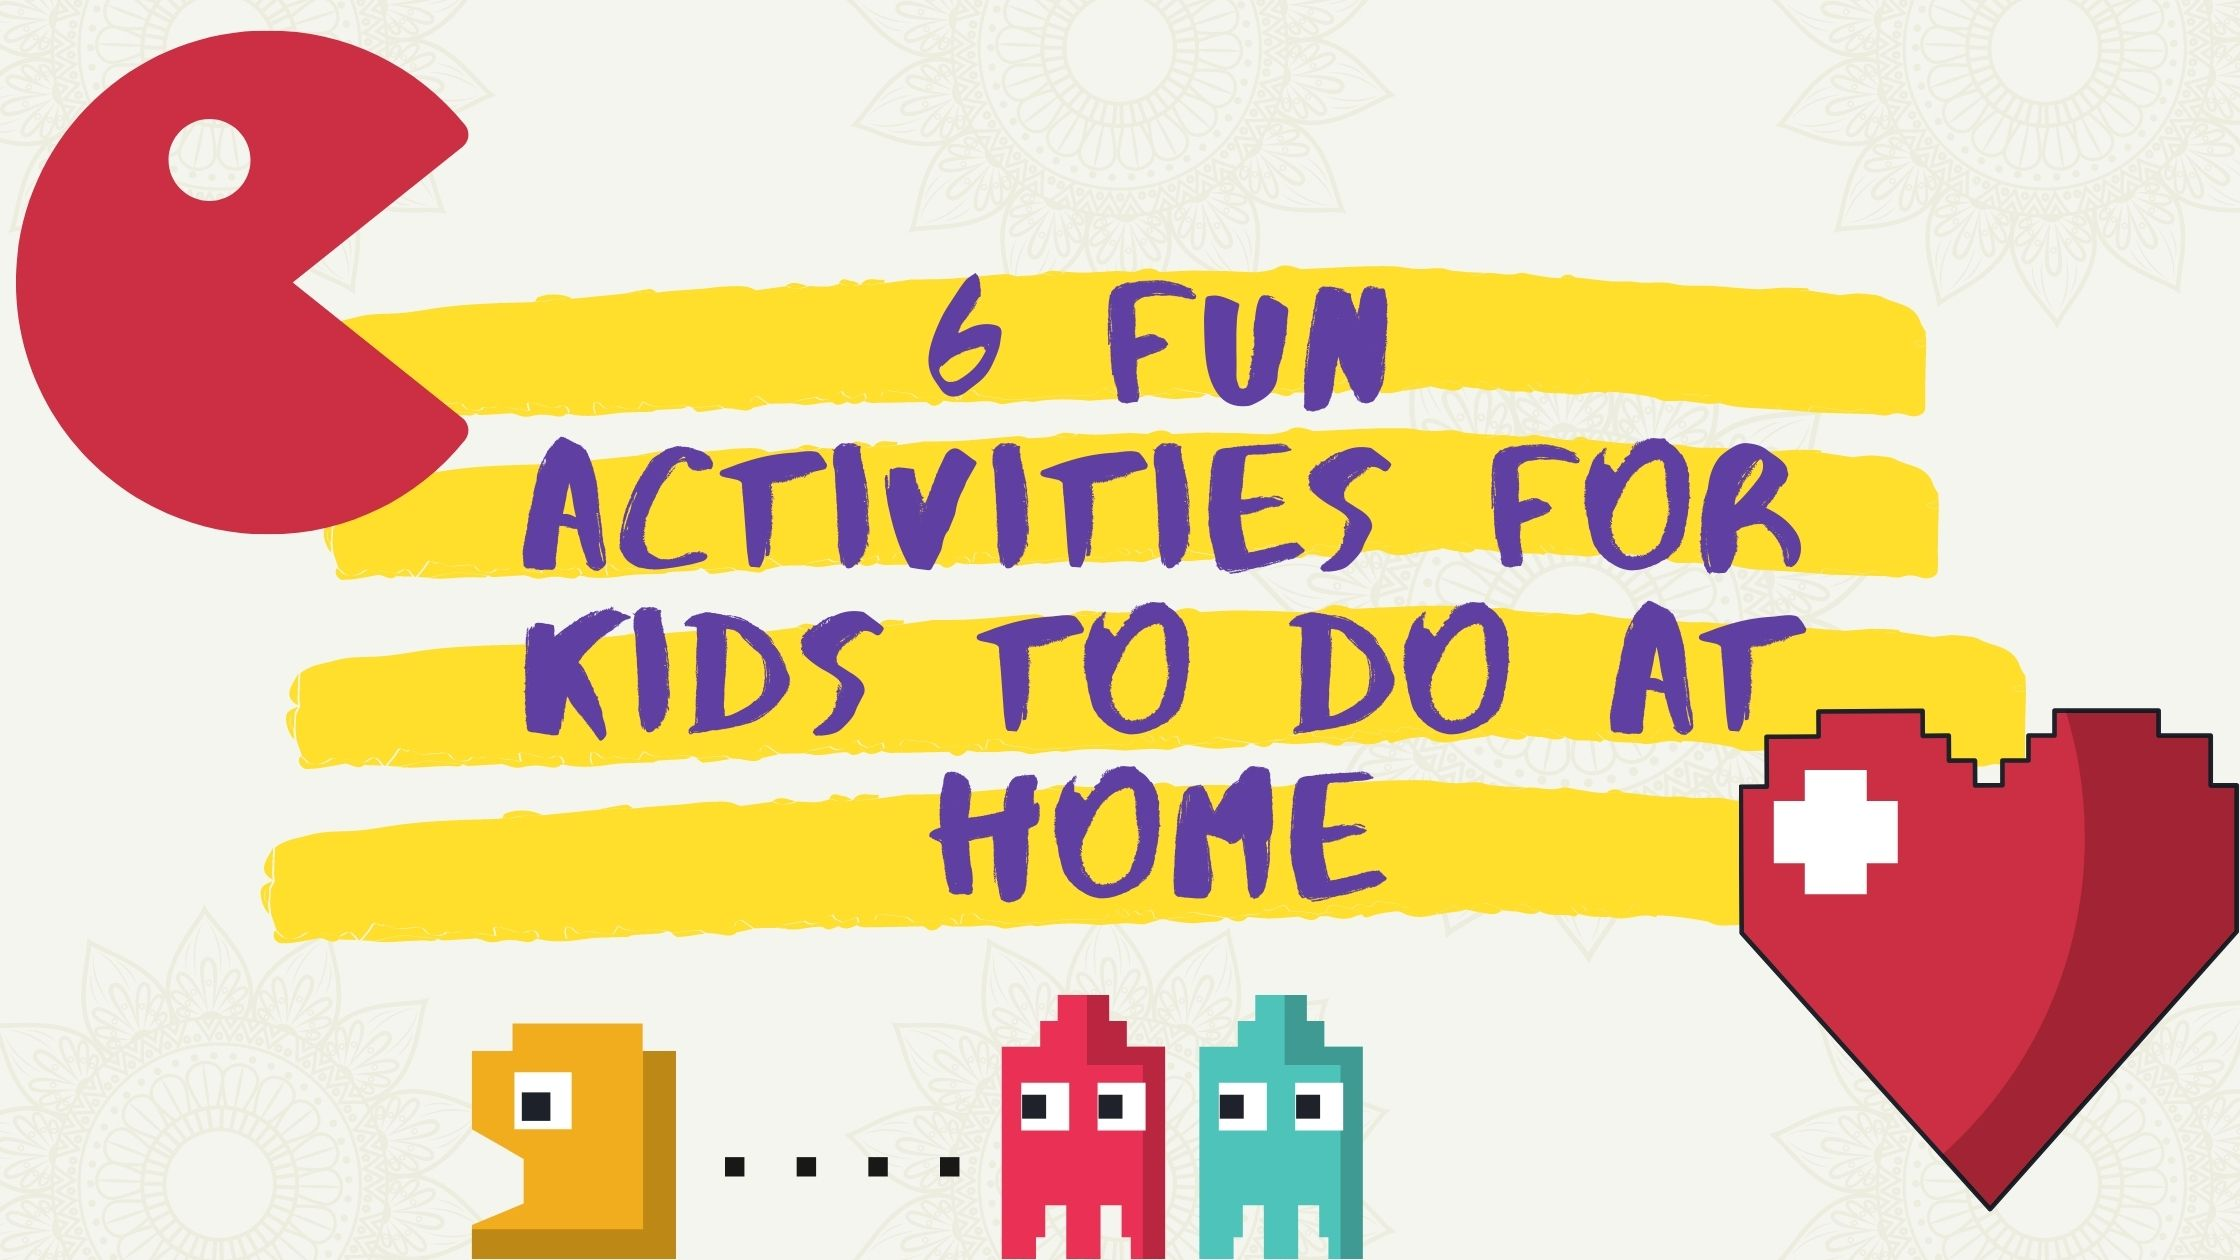 6 fun activities for kids to do at home